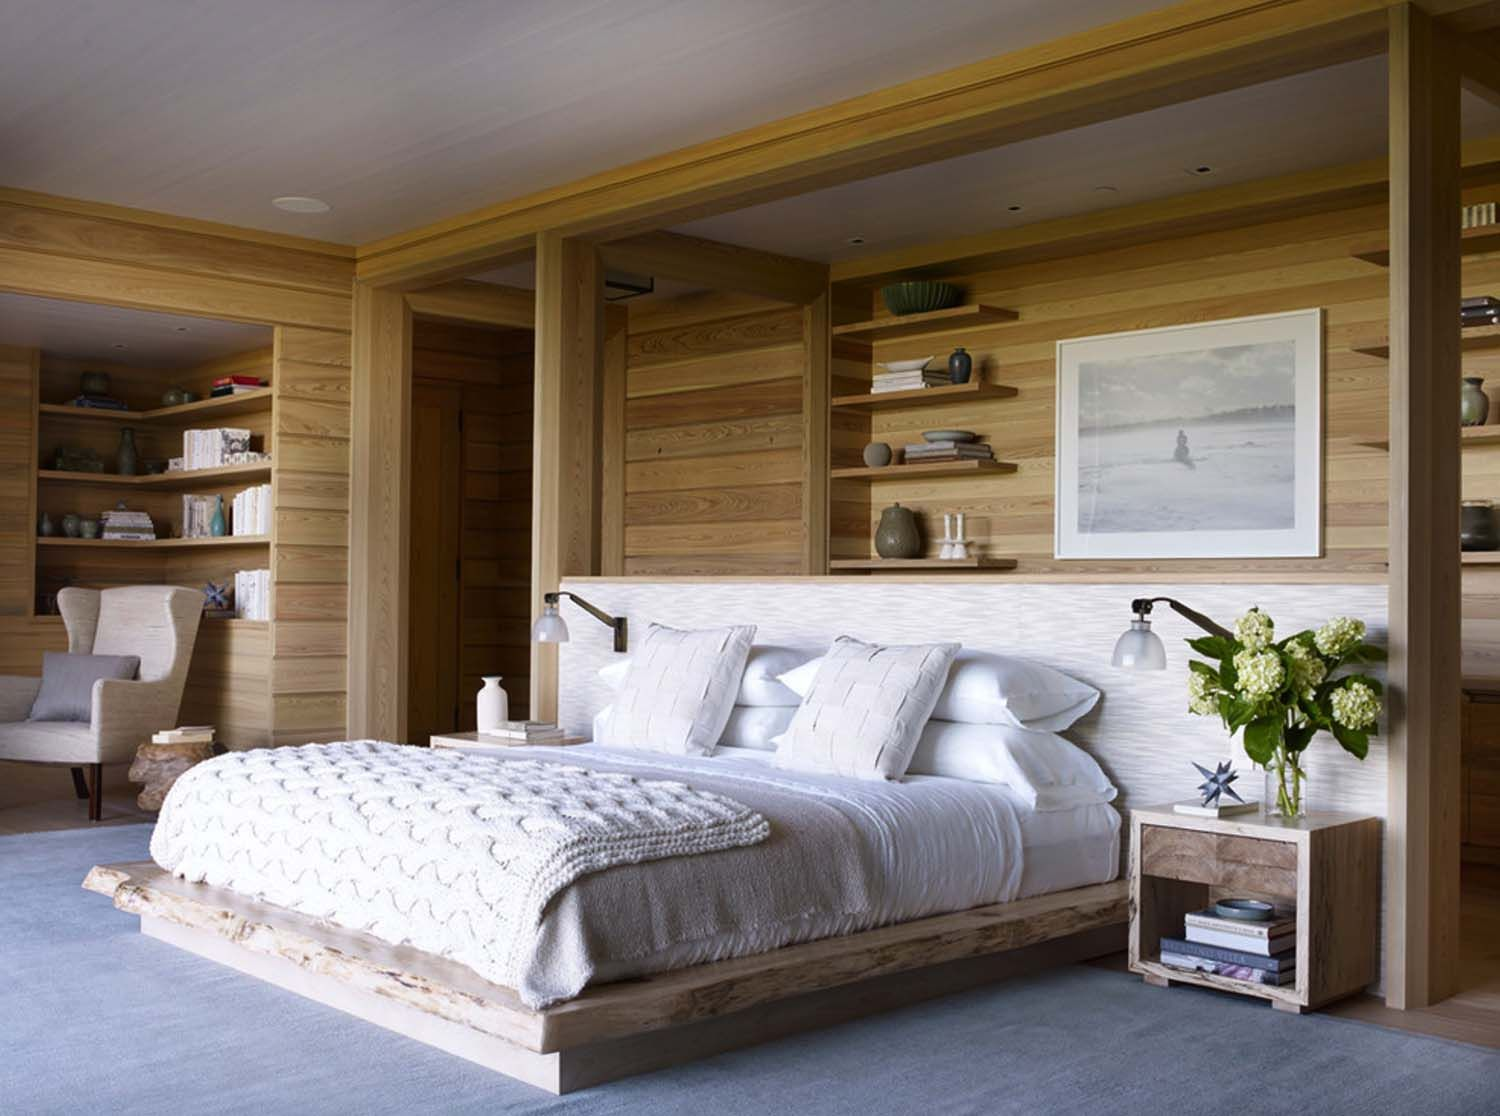 Room also magnificent shingle style beach house overlooking the atlantic ocean rh pinterest